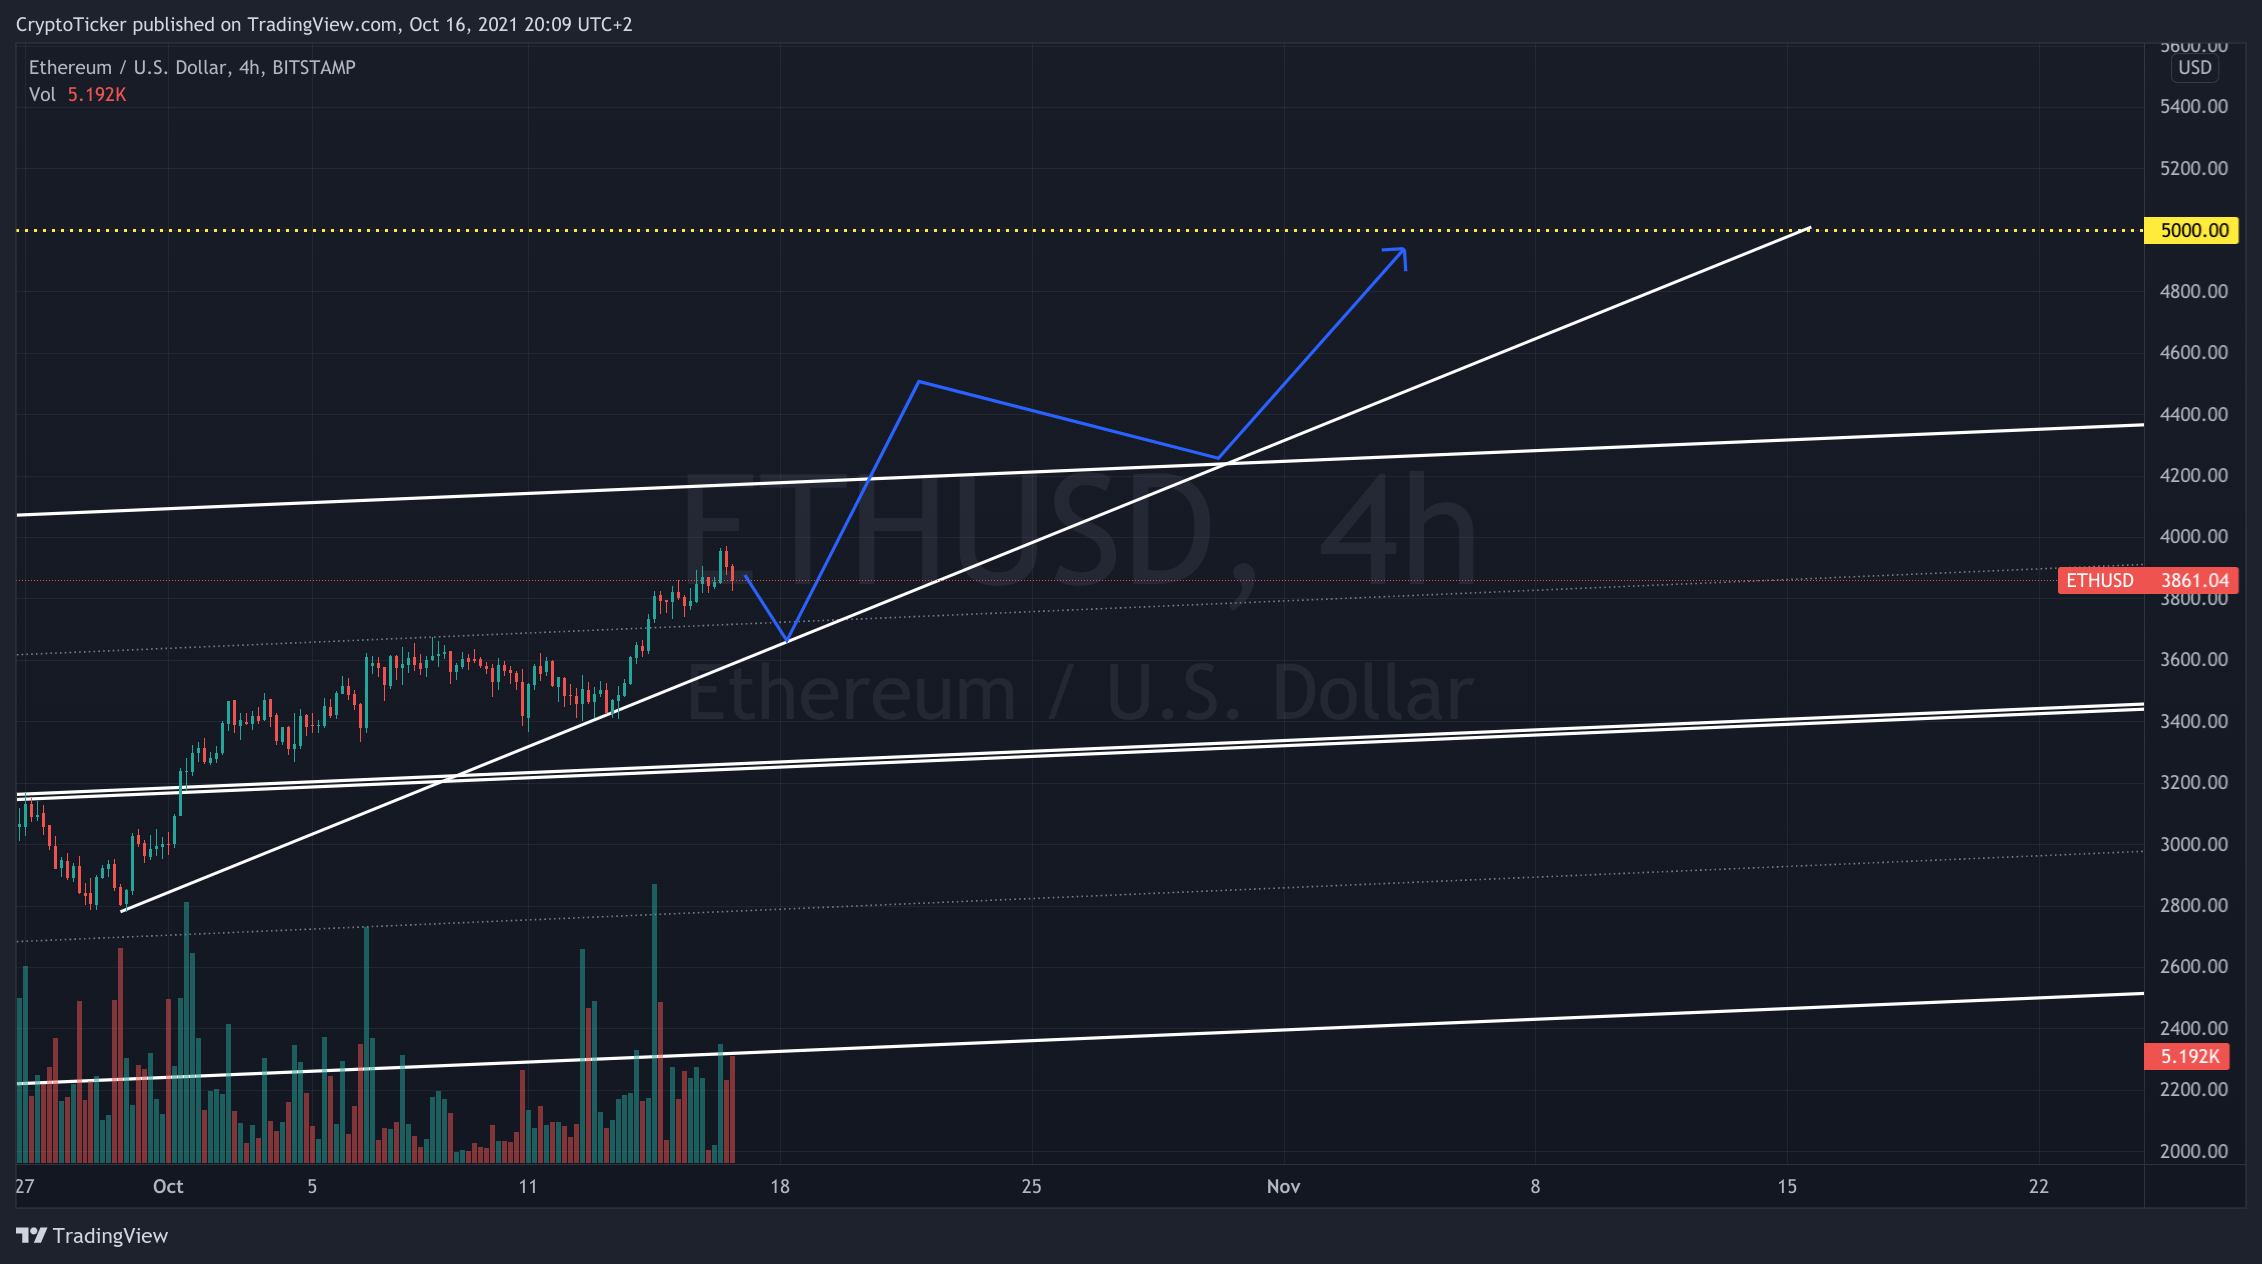 ETH/USD 4-hours chart showing the potential path of ETH towards 5K